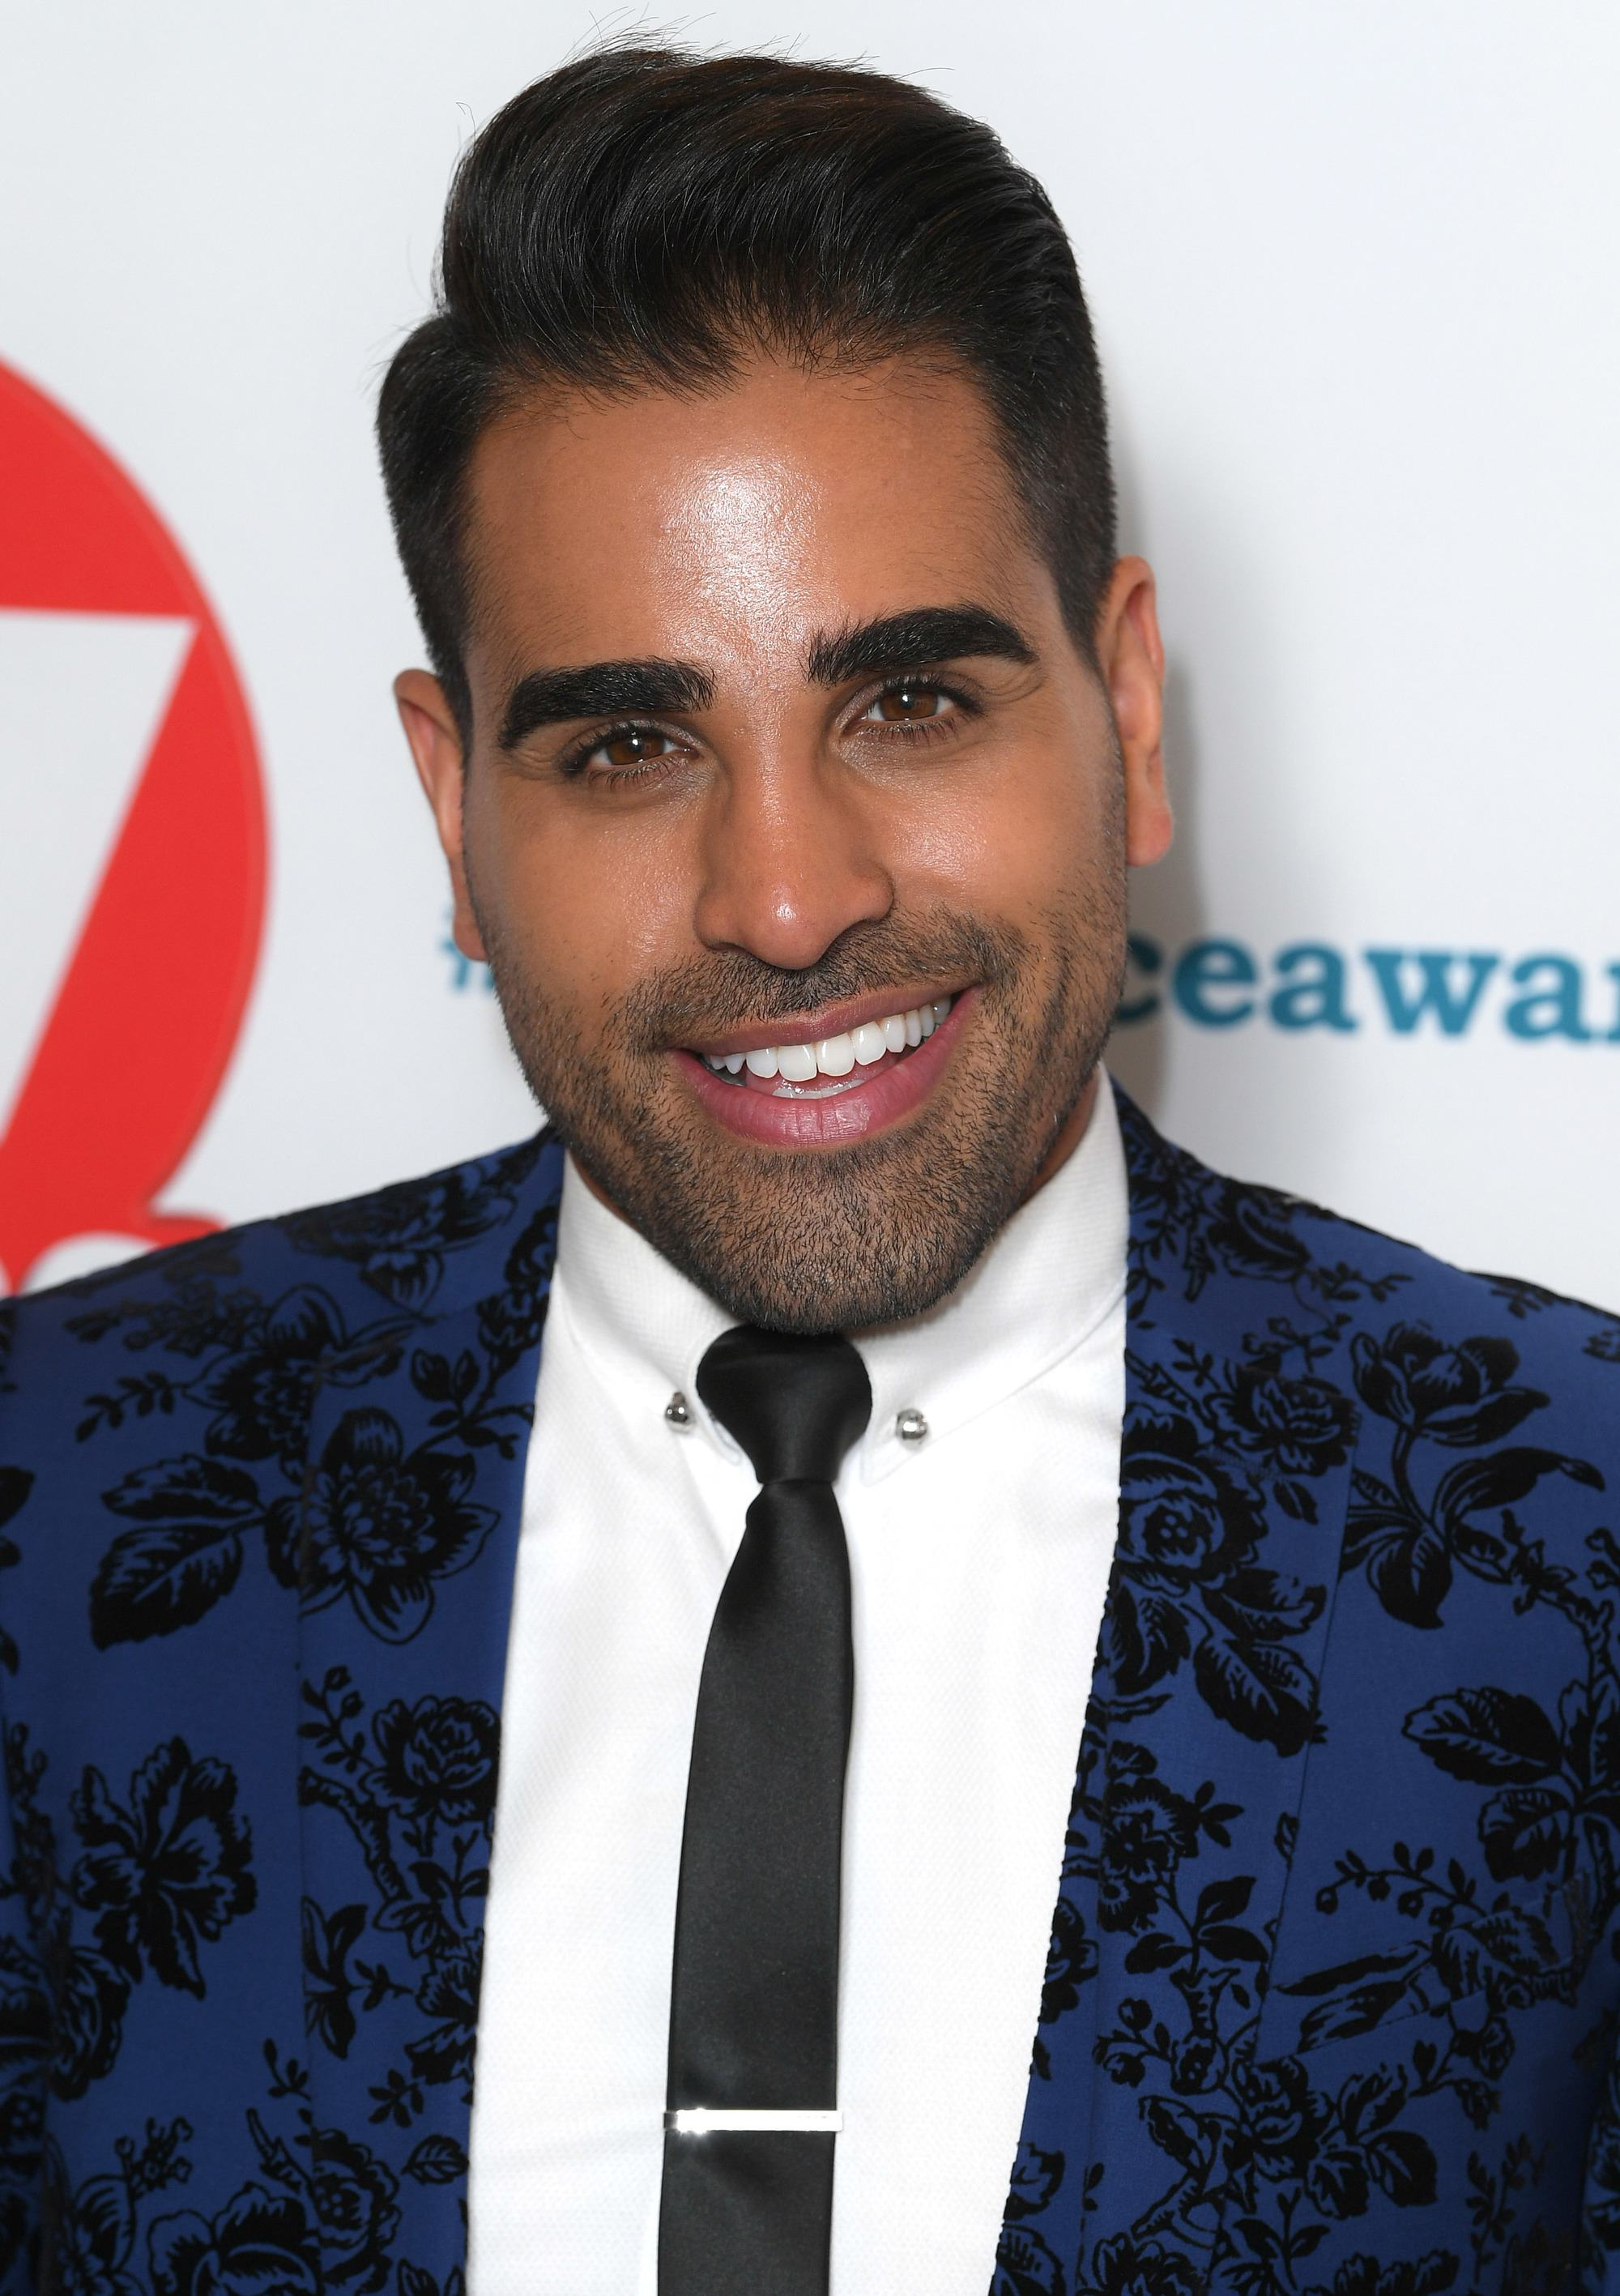 TV Choice Awards: Close up shot of Dr.Ranj Singh with medium dark brown hair styled into a slick combover, wearing dark blue and black suit on the red carpet